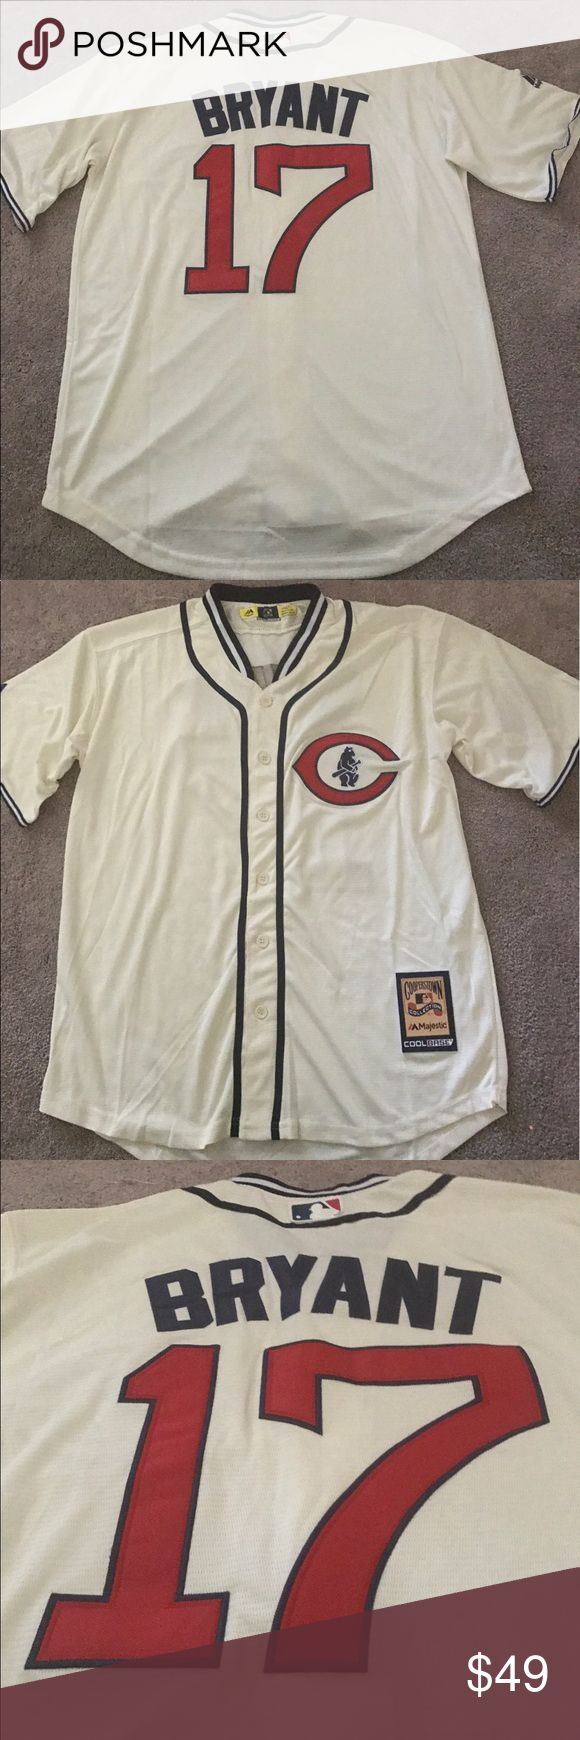 Kris Bryant Cubs 1929 Throwback jersey (Medium) Chicago Cubs Kris Bryant 1929 Throwback jersey. Brand new with tags, fully embroidered Majestic Athletic Cooperstown Collection jersey. Please check my other listings for more Cubs merchandise! Many more styles/sizes available for men, women and kids! Majestic Shirts Casual Button Down Shirts